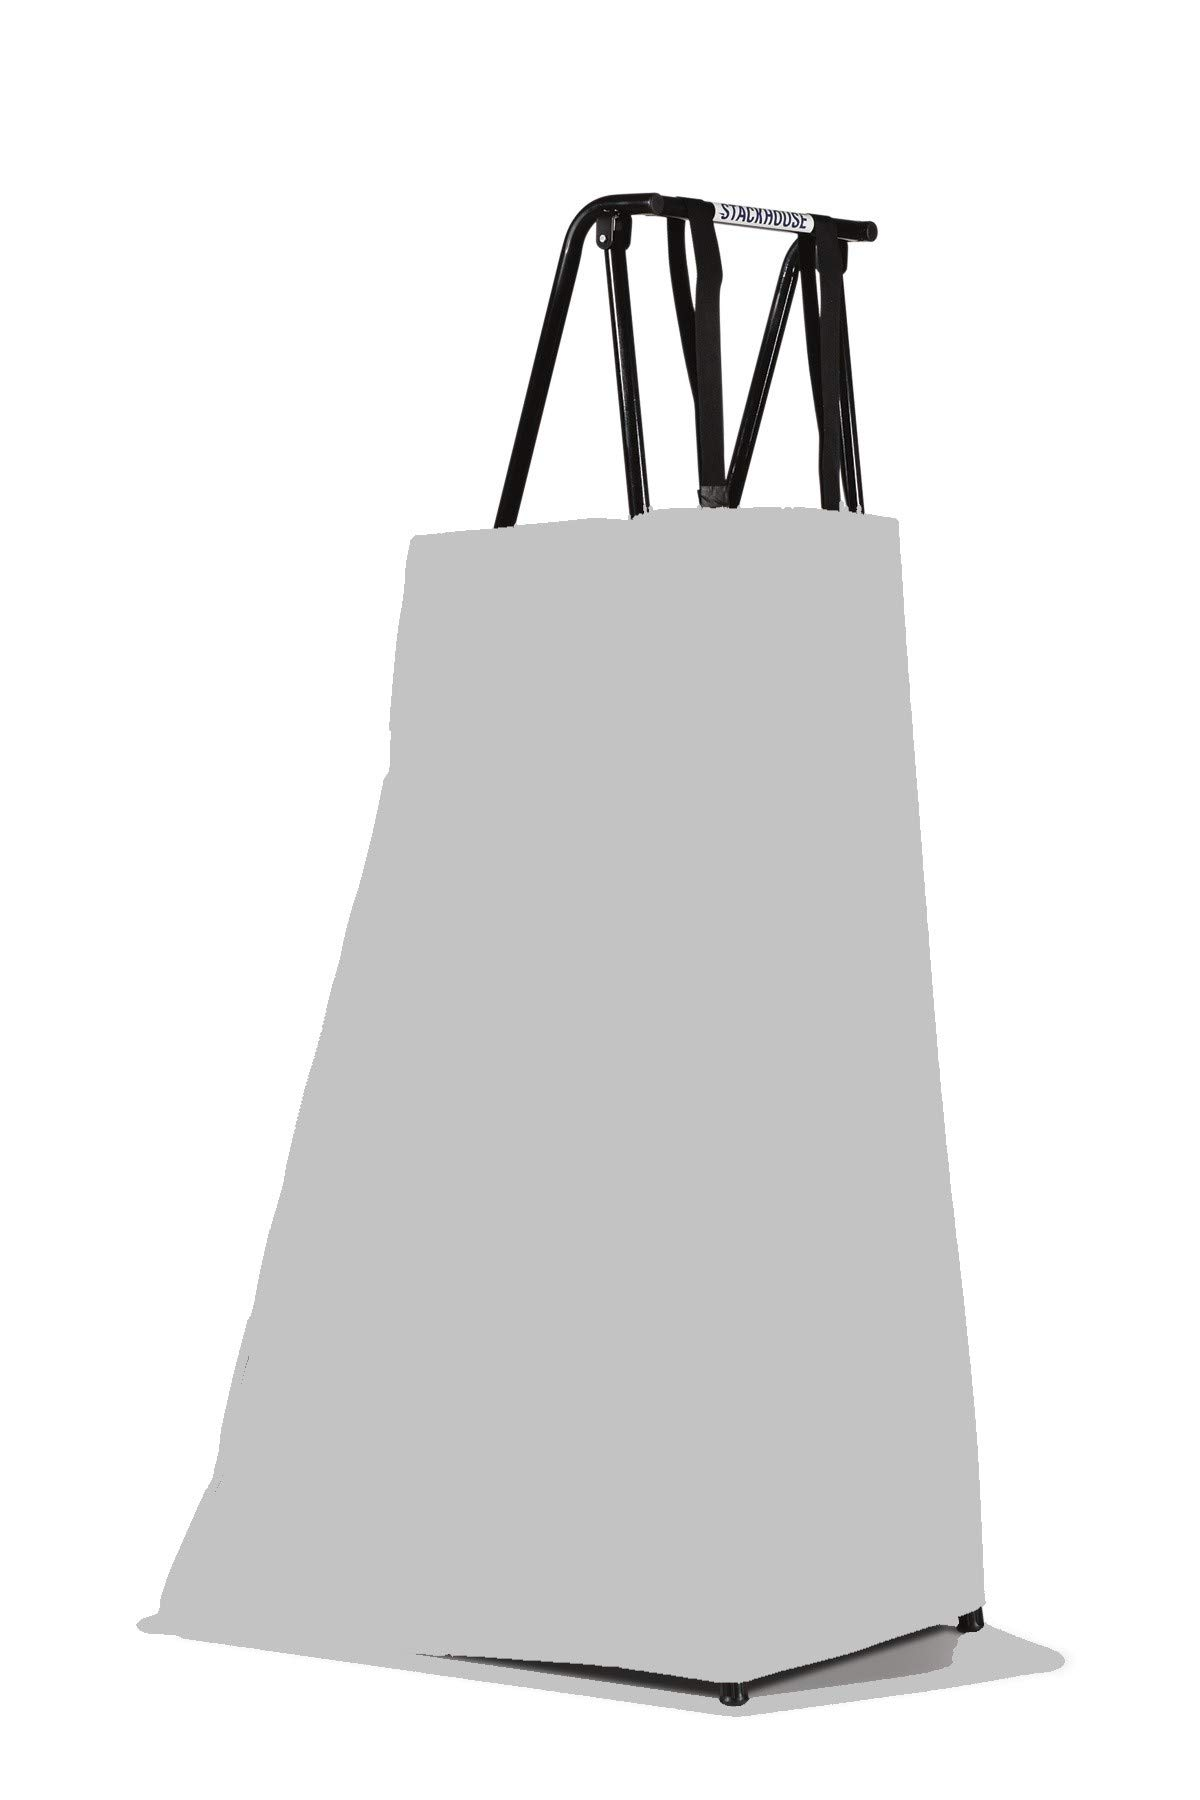 Eastern Atlantic New - Volleyball Referee Stand Protective Padding (Grey)